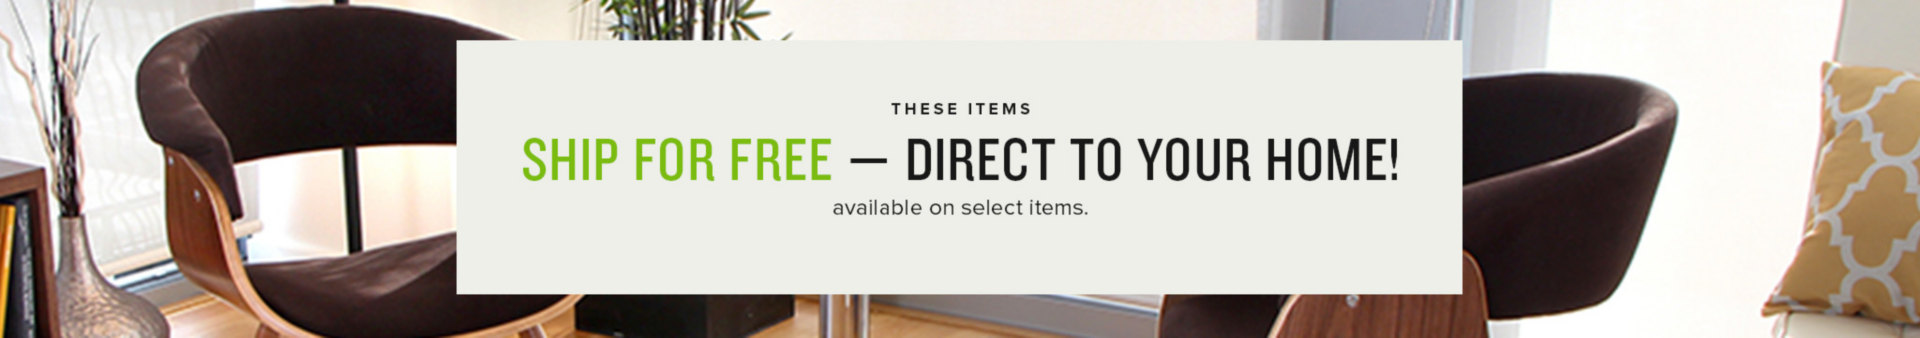 ship for free - direct to your home!